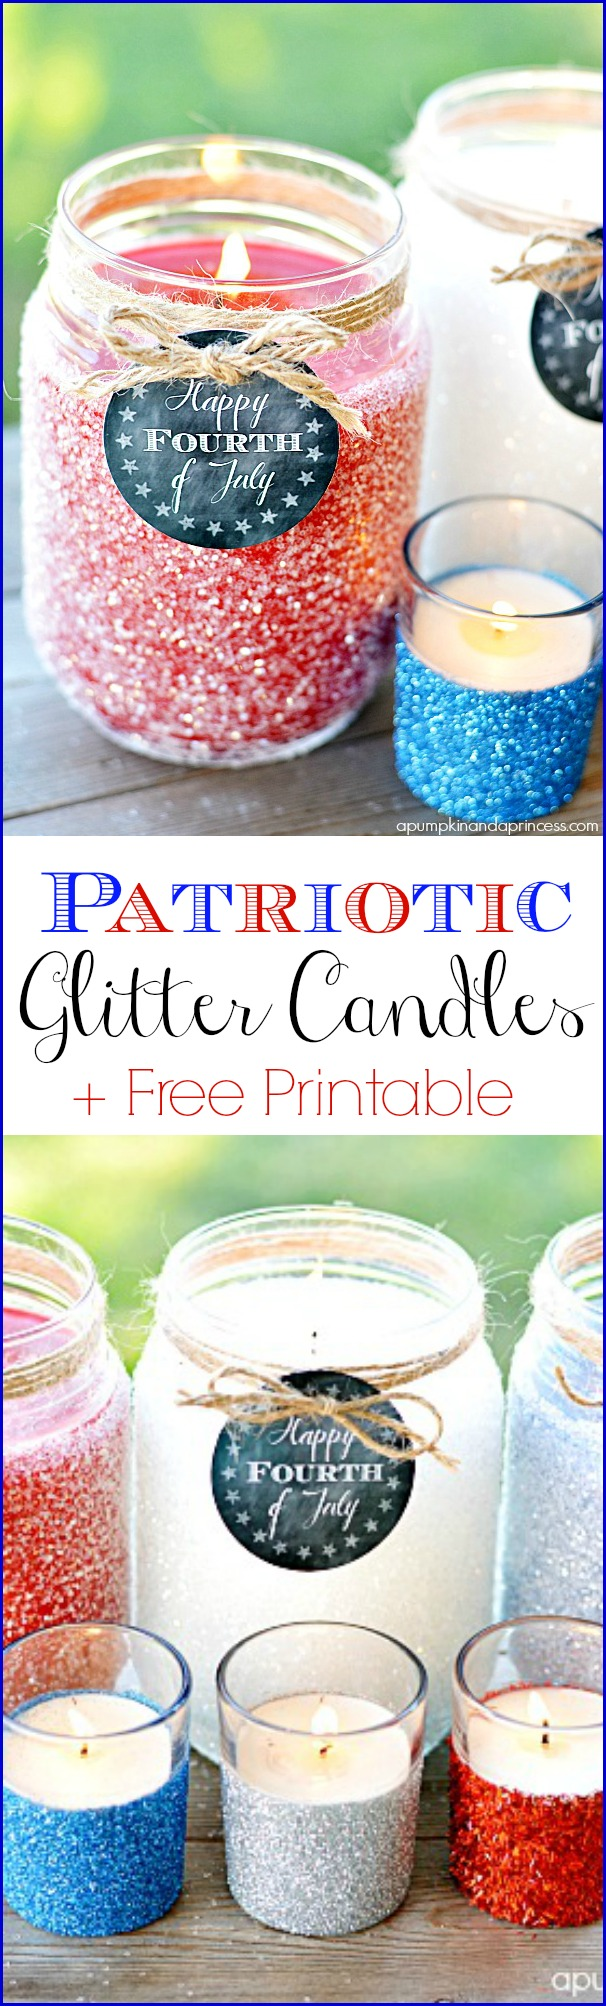 Patriotic Glitter Candles + Free Printable